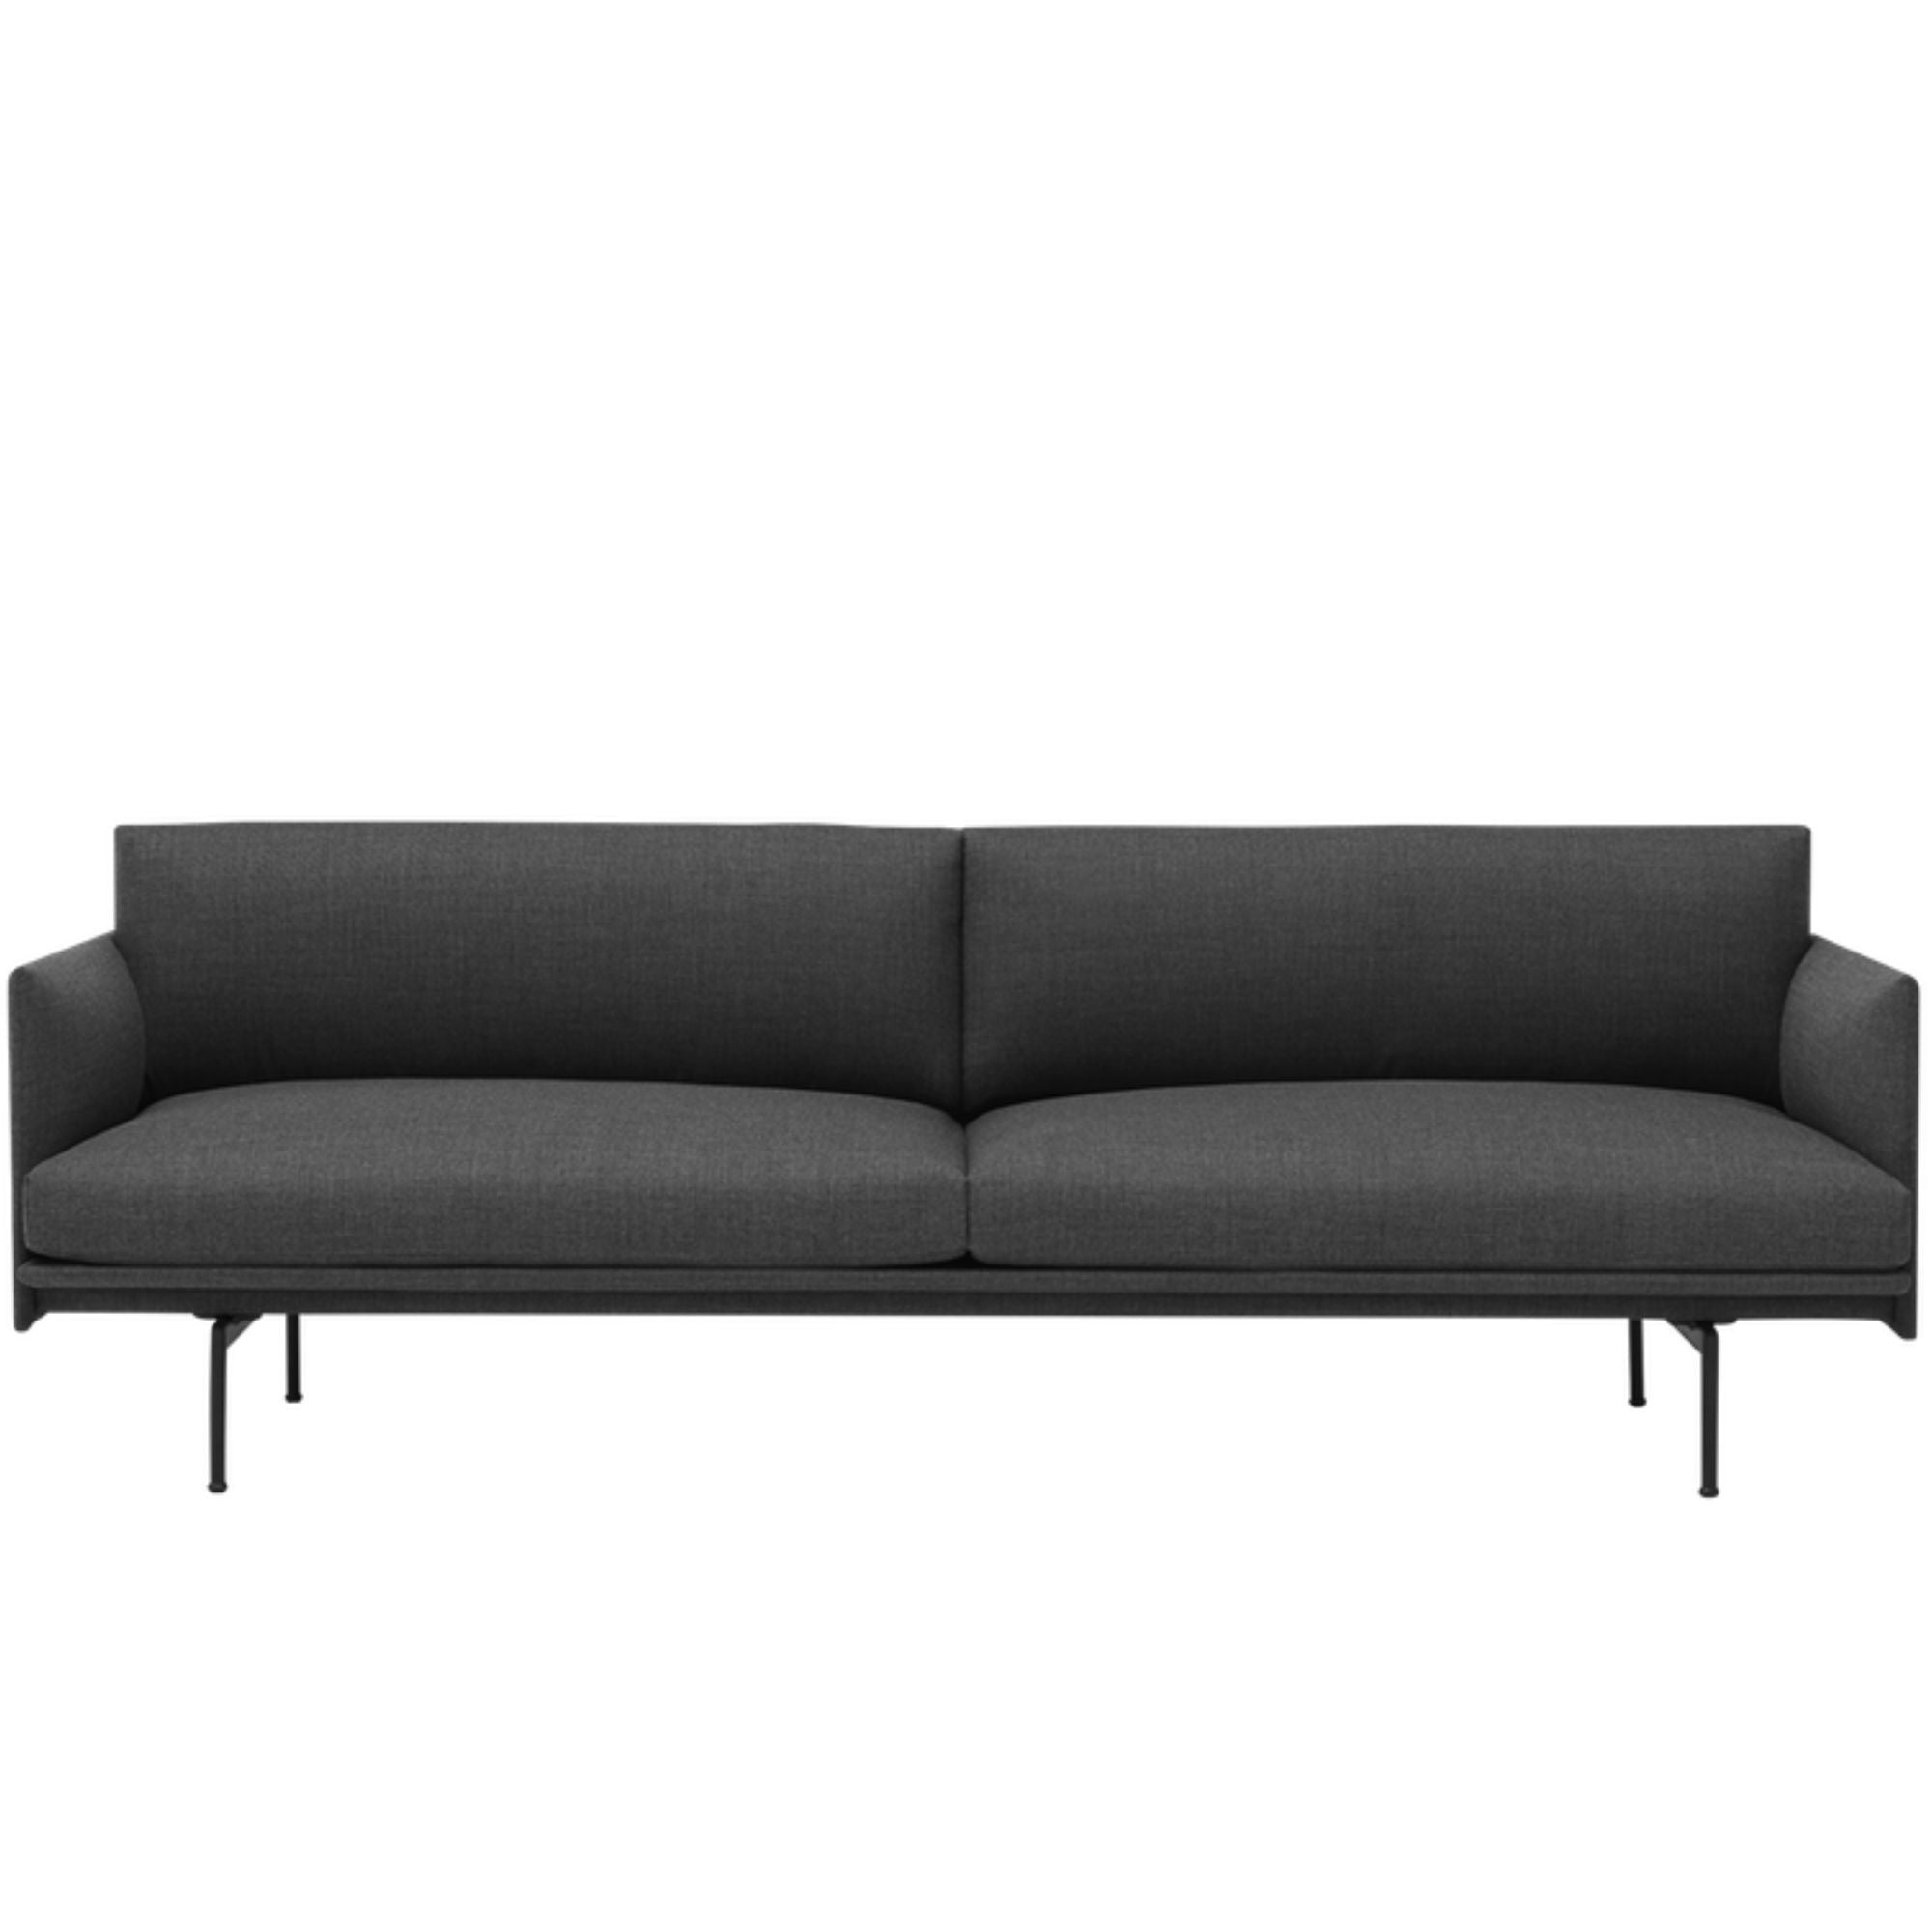 Muuto Outline Sofa 3-Seater Black Base , Remix 163